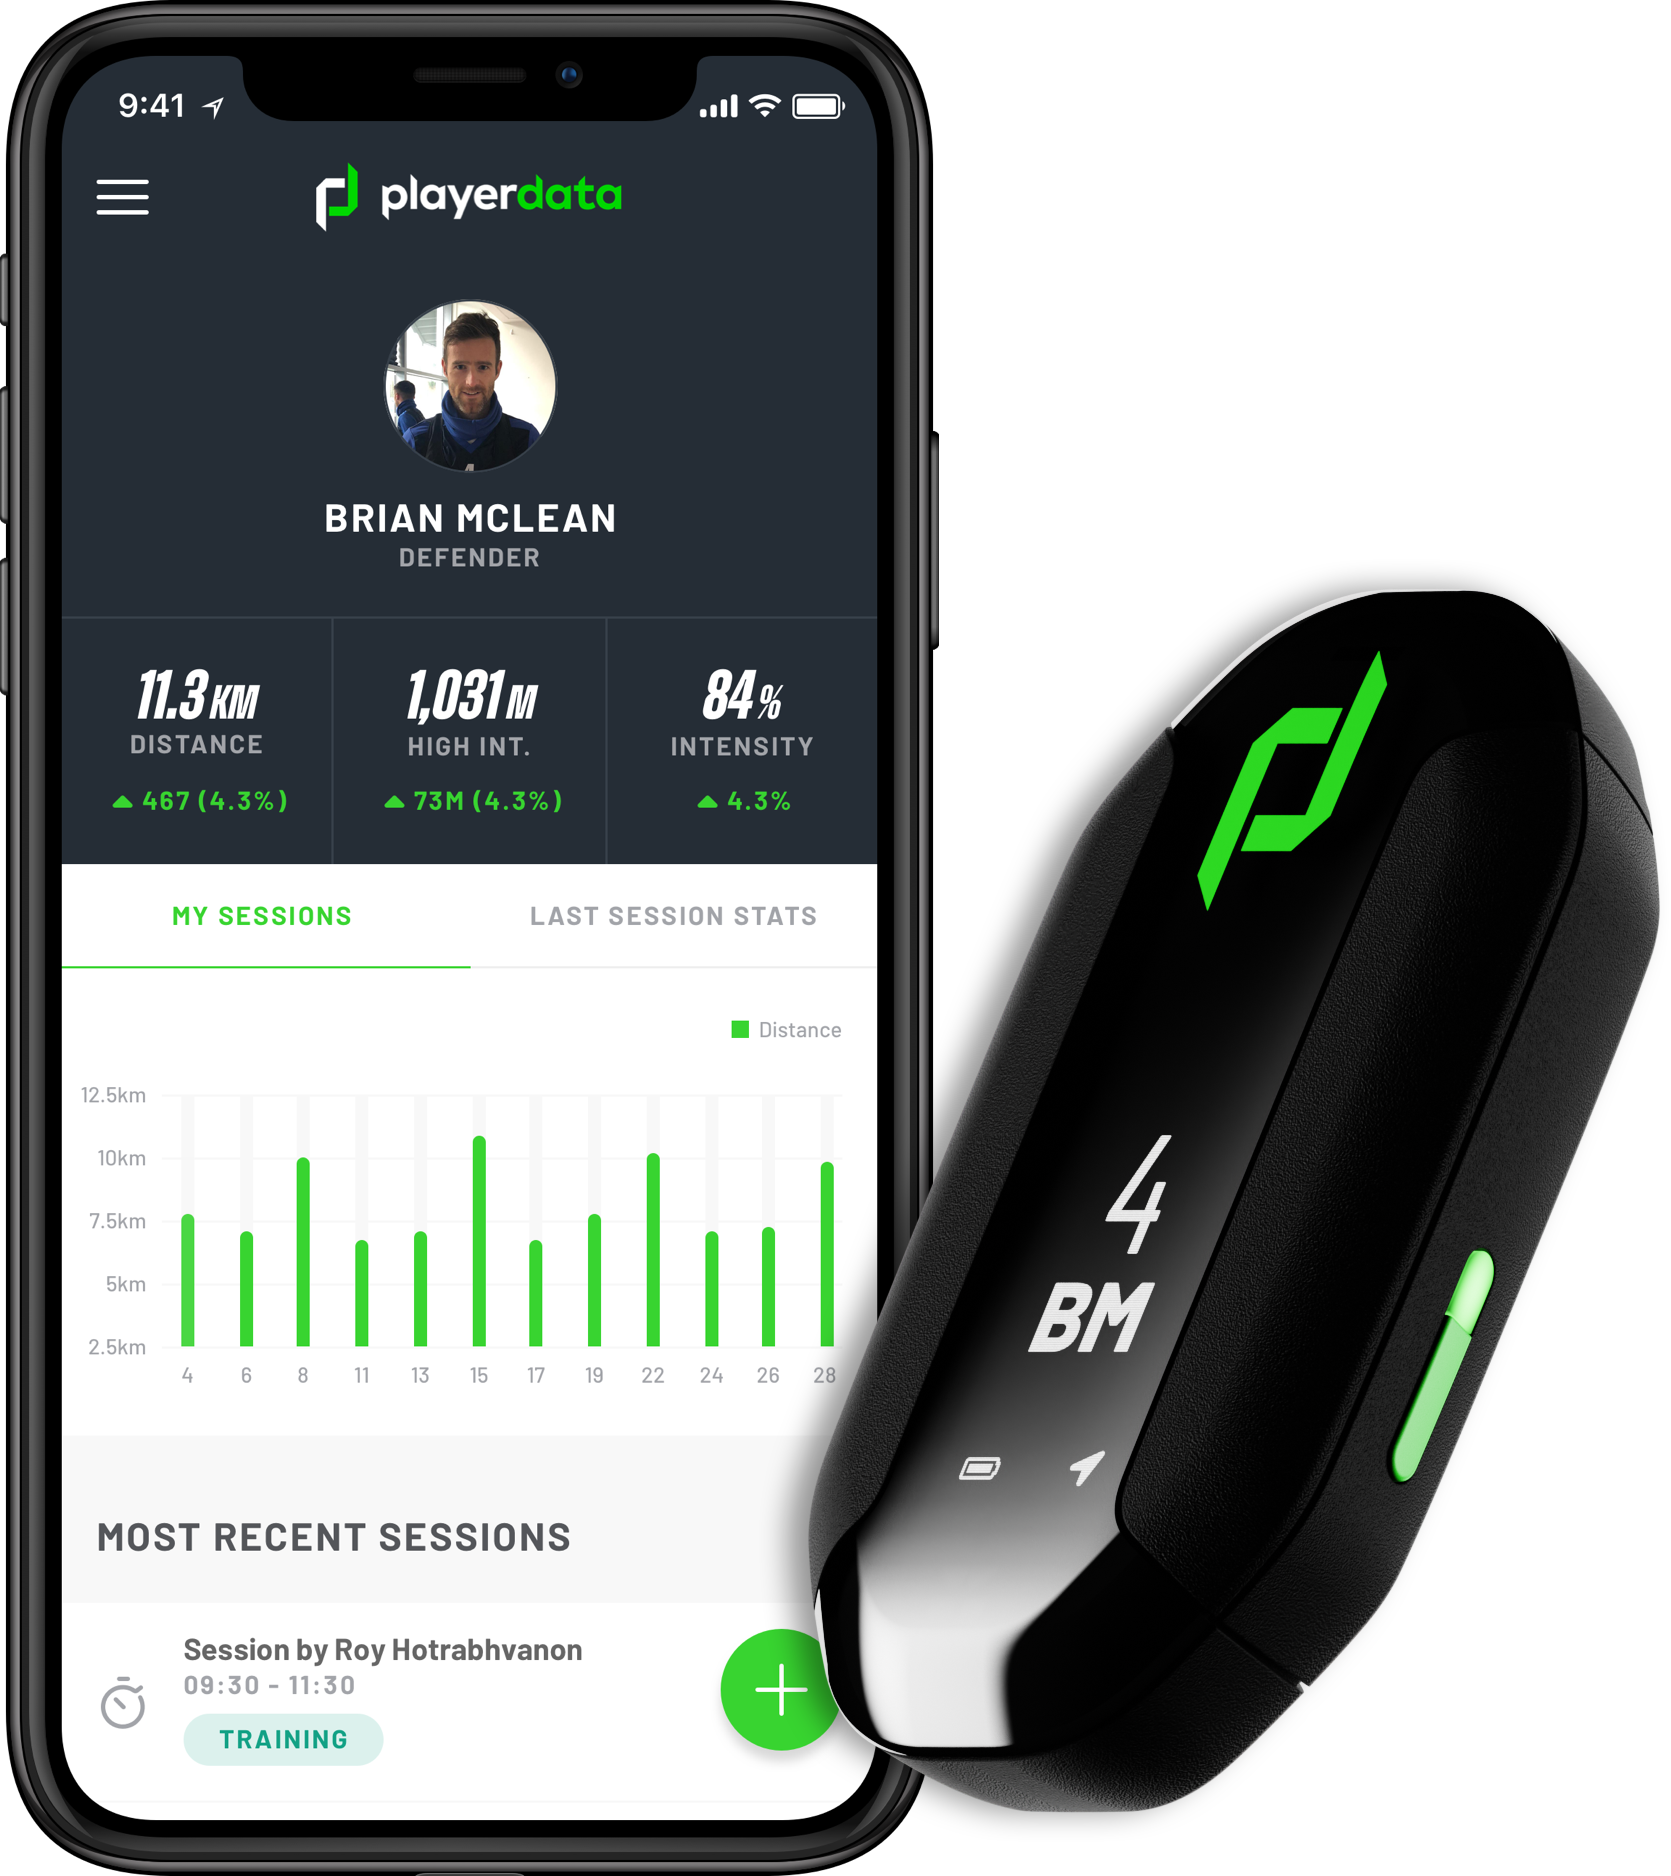 Device and PlayerData product